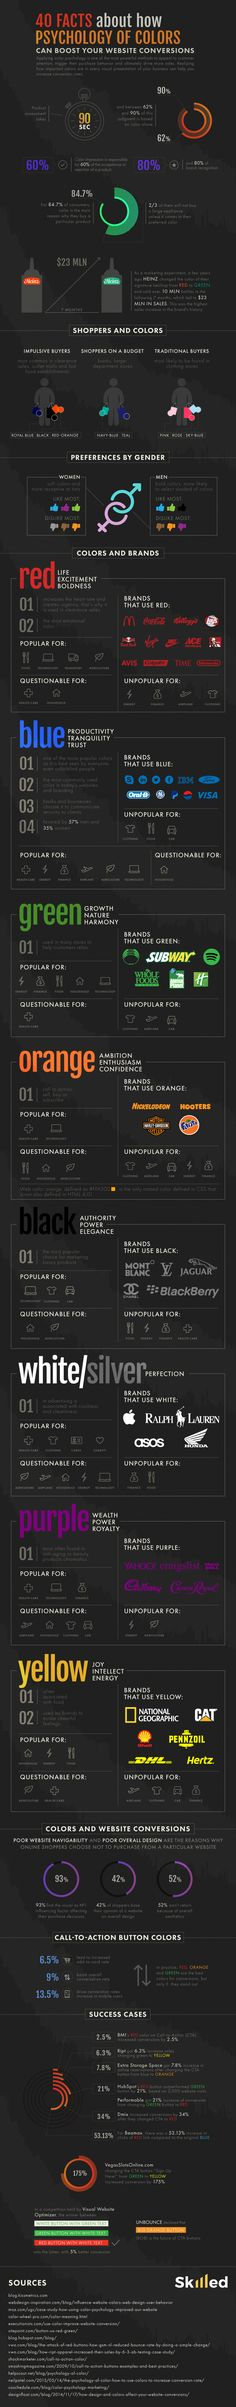 FORTY Facts on the Psychology of Color